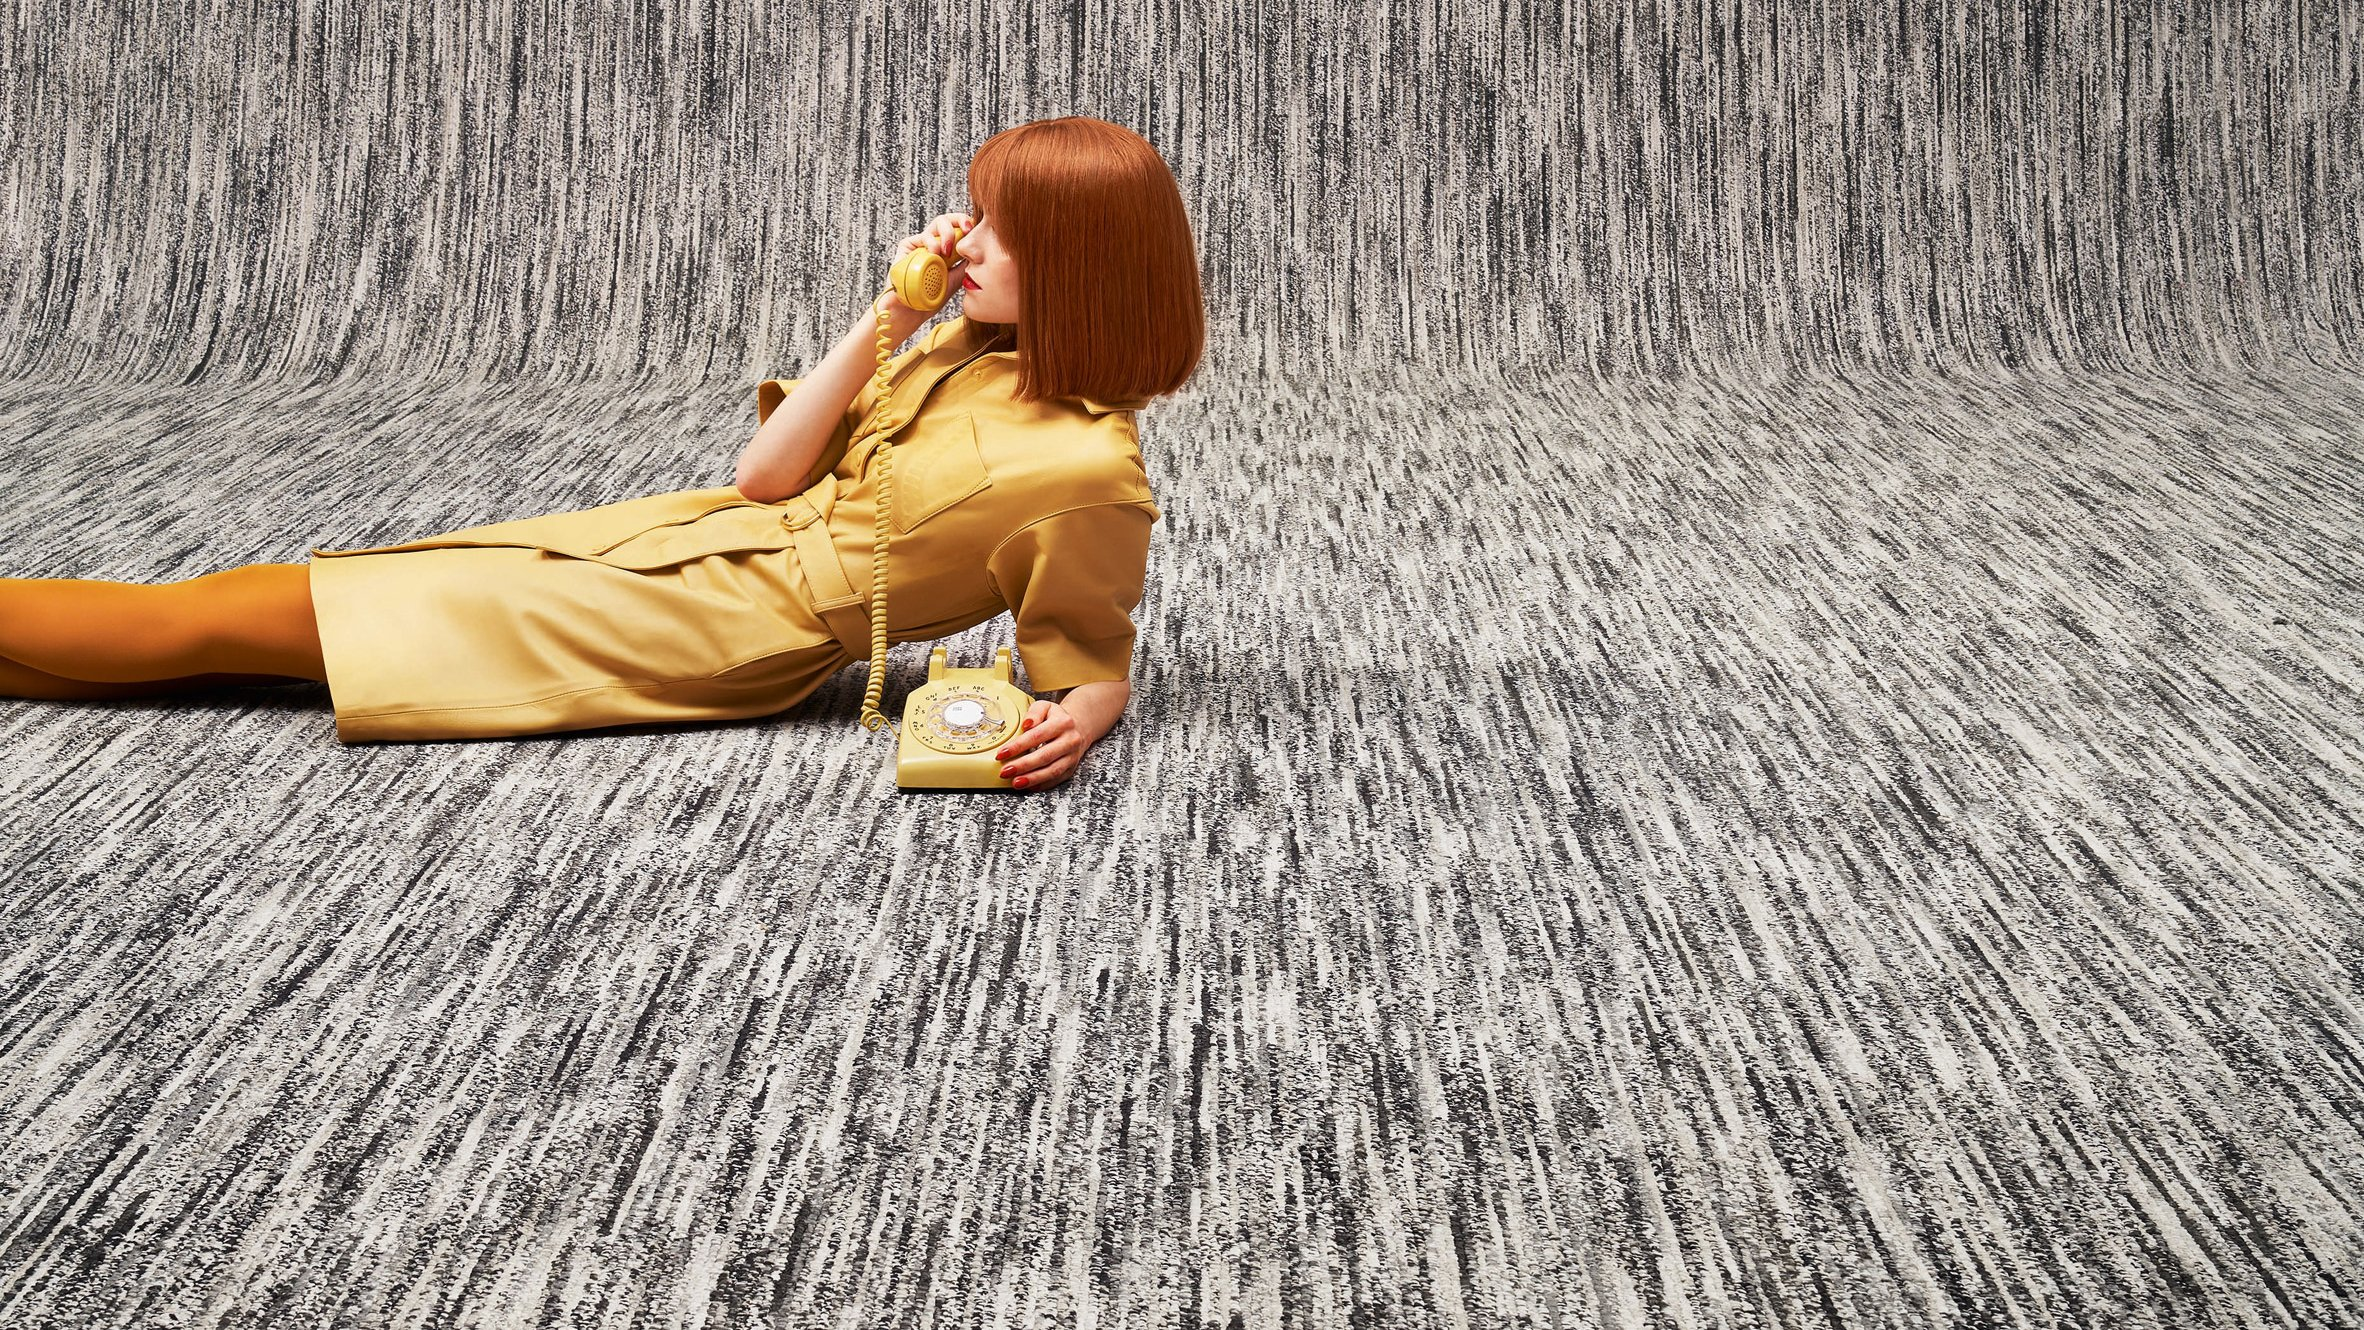 MEET × BEAT carpet by Ippolito Fleitz Group for Object Carpet